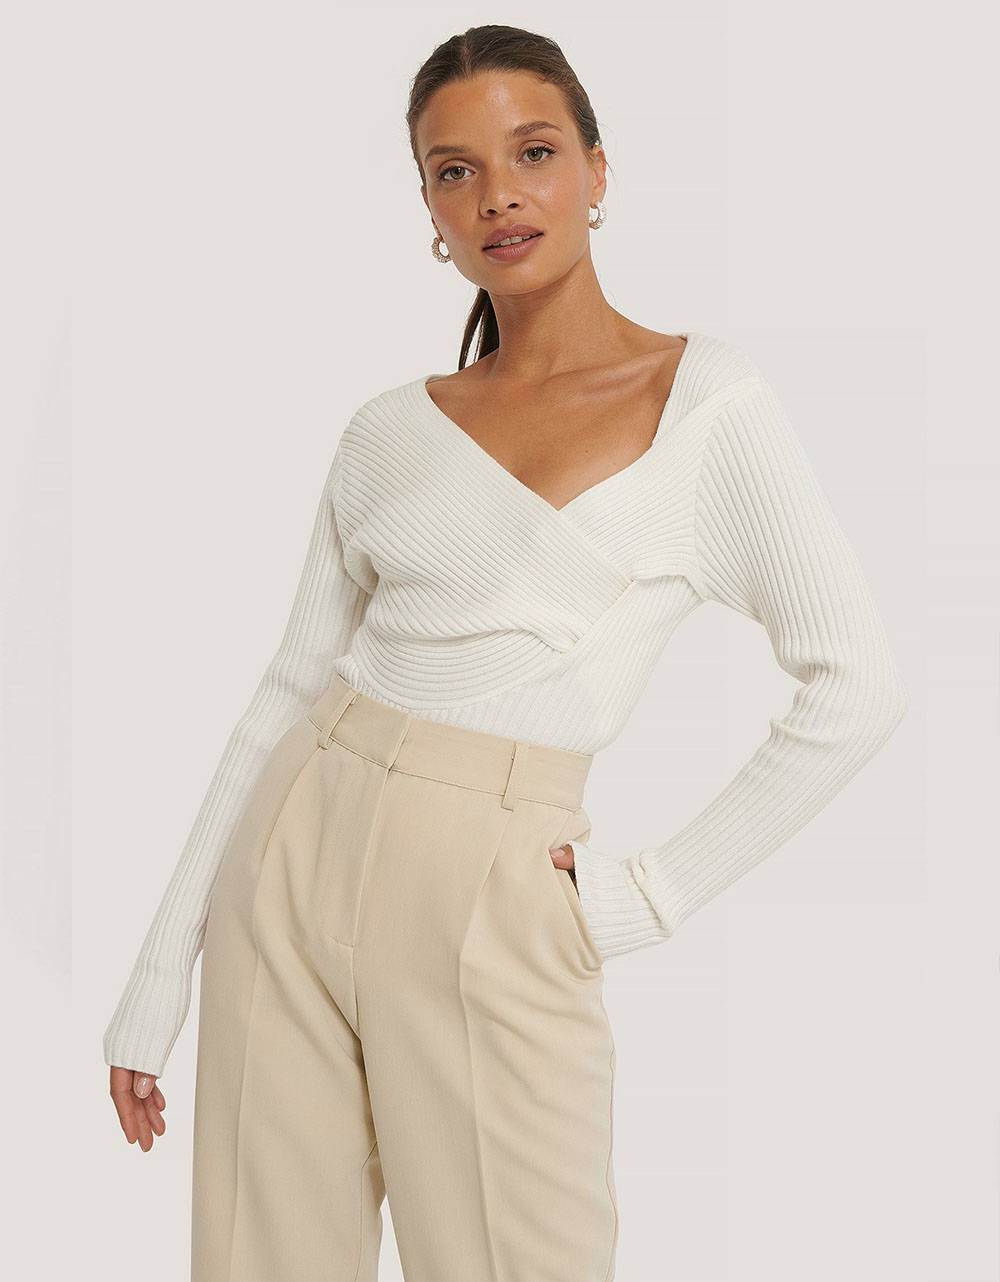 NA-KD Twisted front top - off white NA-KD Top 61,48€